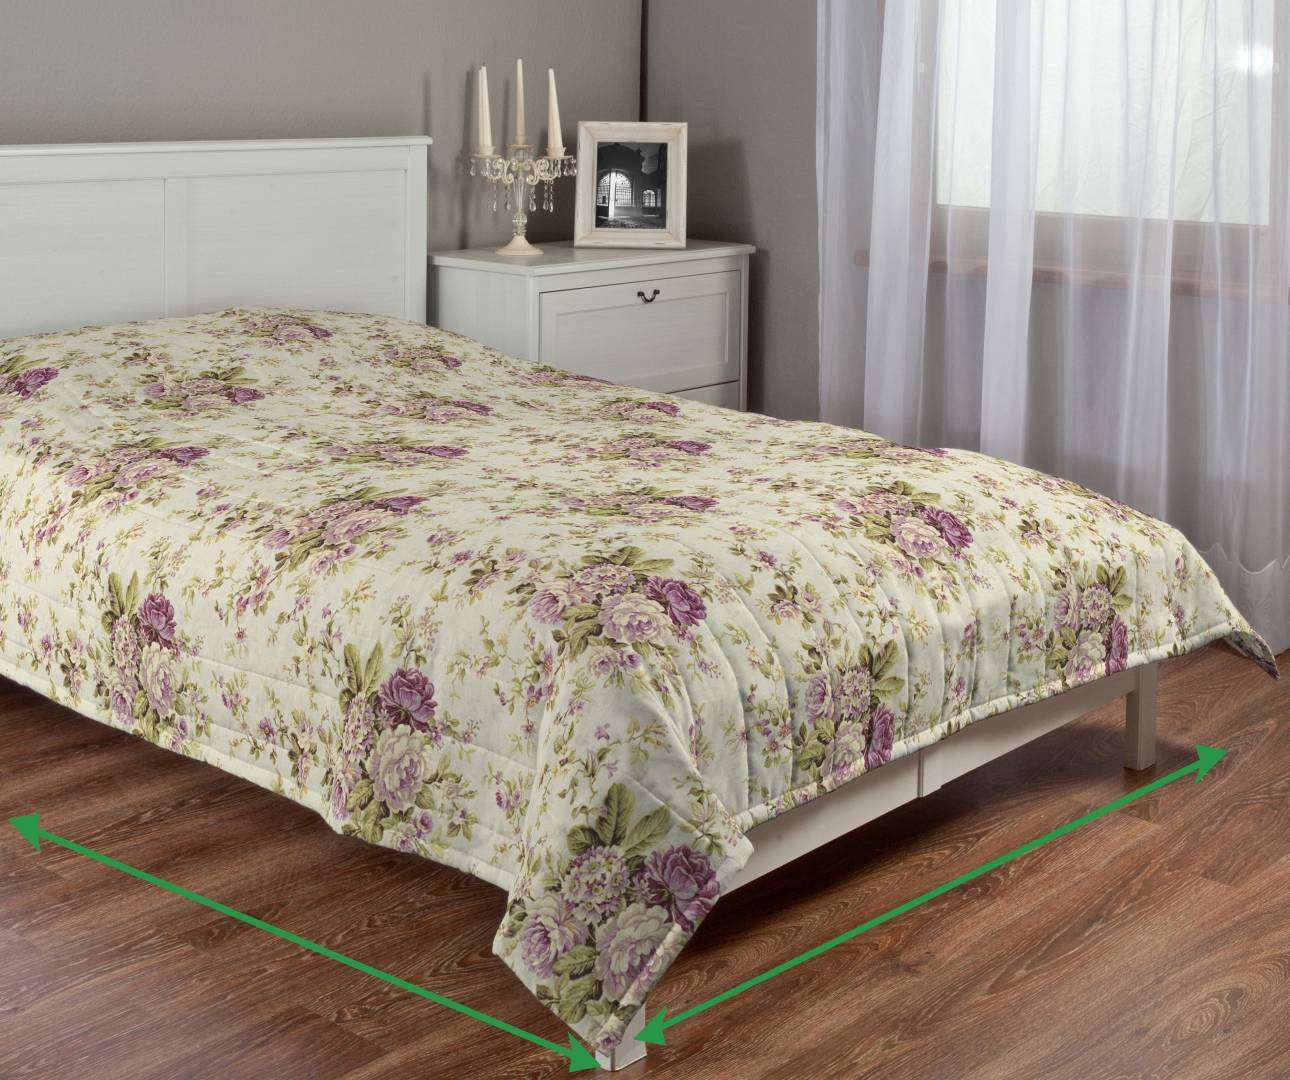 Quilted throw (vertical quilt pattern) in collection Londres, fabric: 122-08